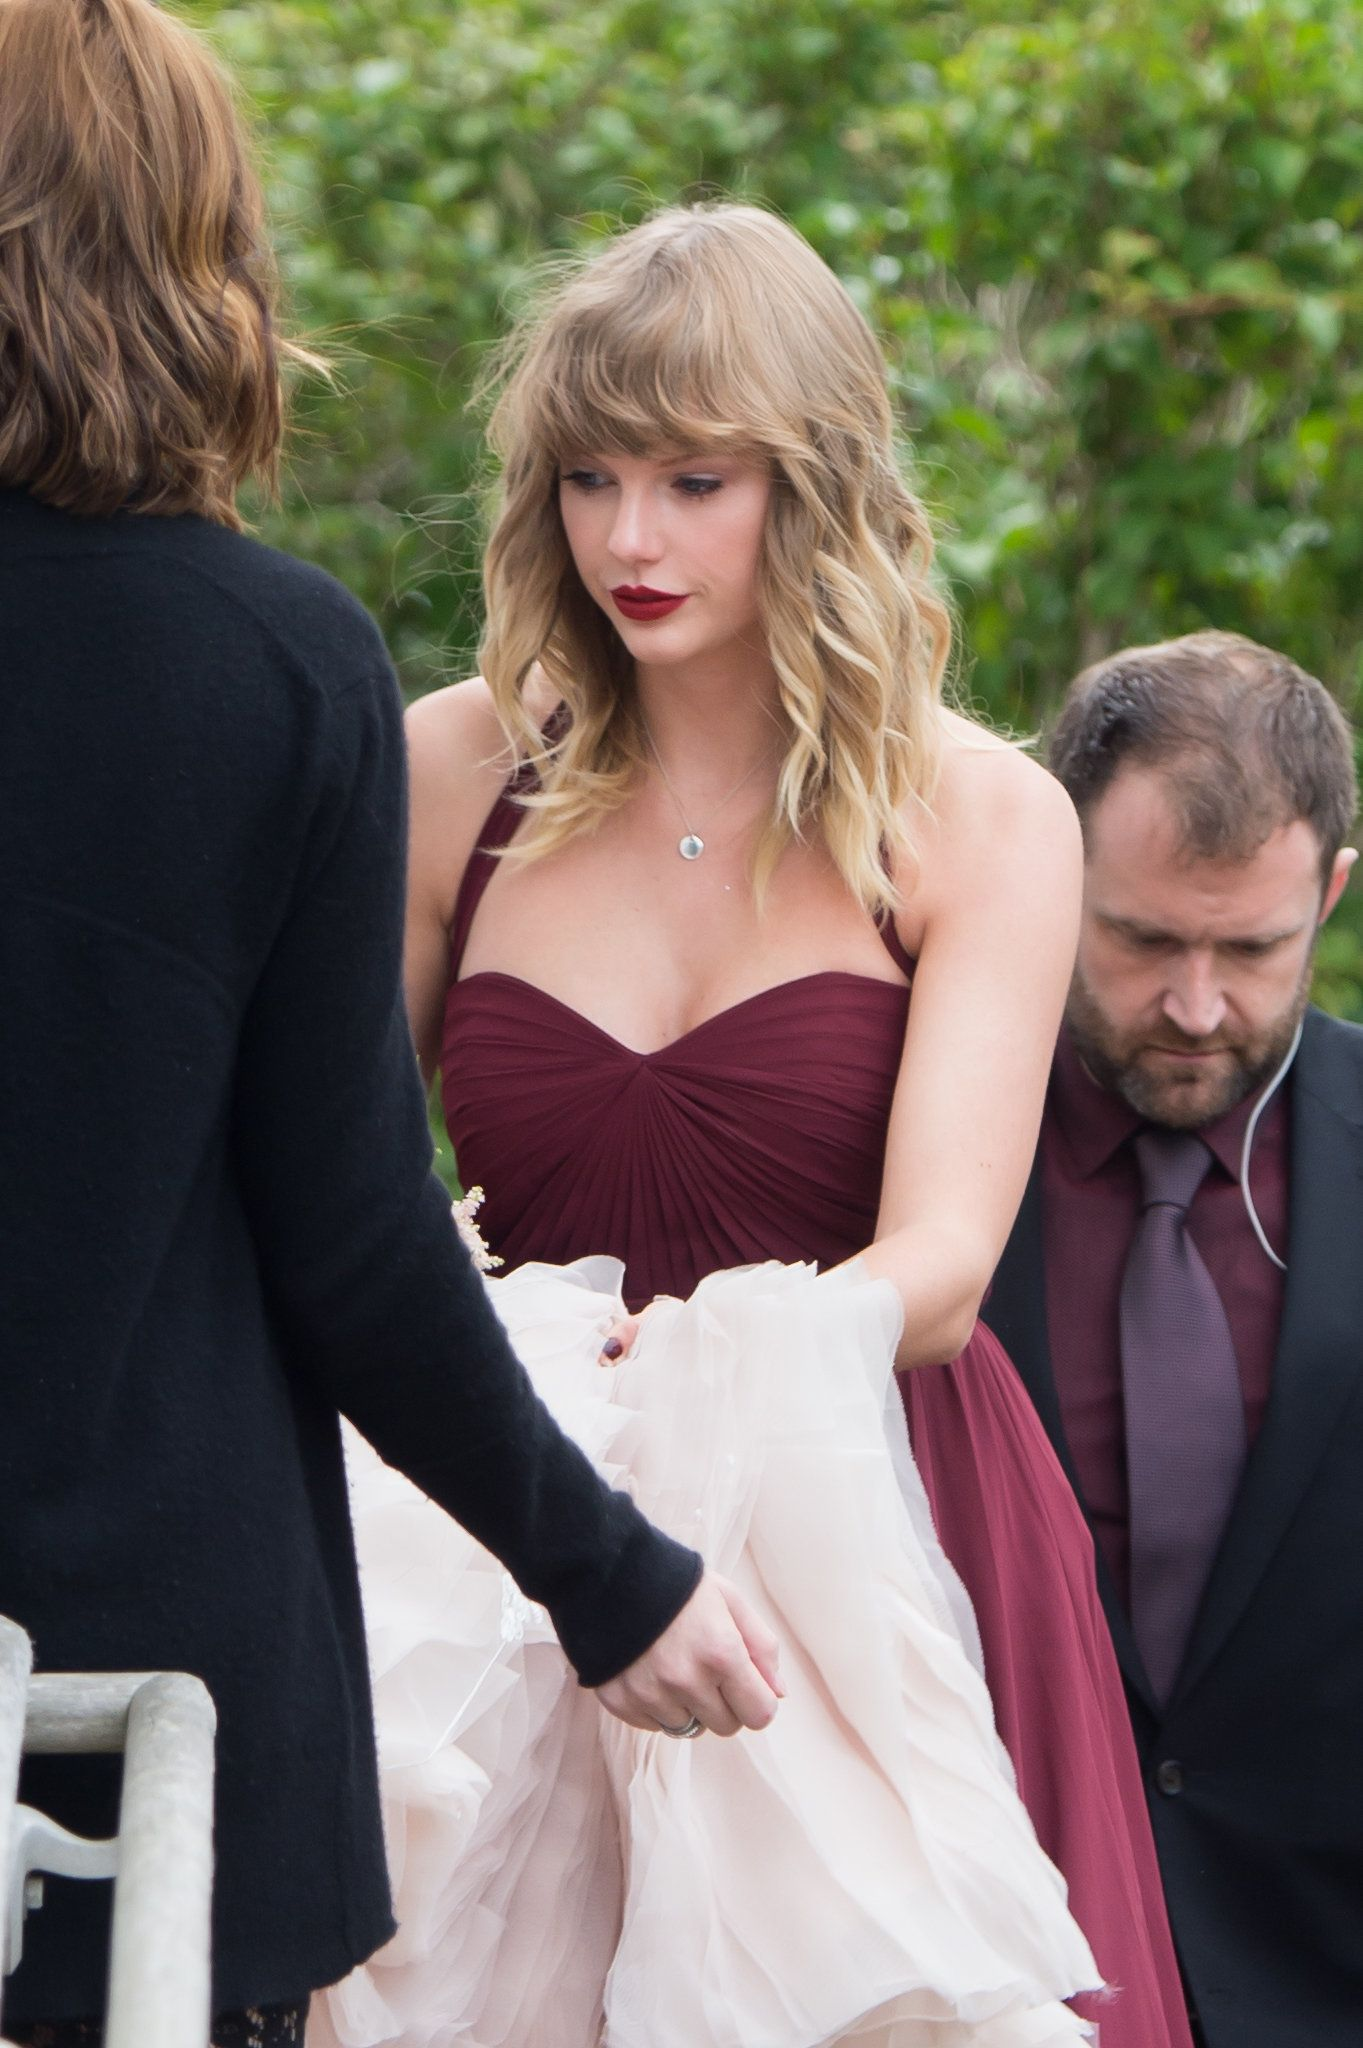 Taylor Swift is seen carrying the back of her BFF Abigail's wedding dress as they arrive at a church in Martha's Vineyard.&nb